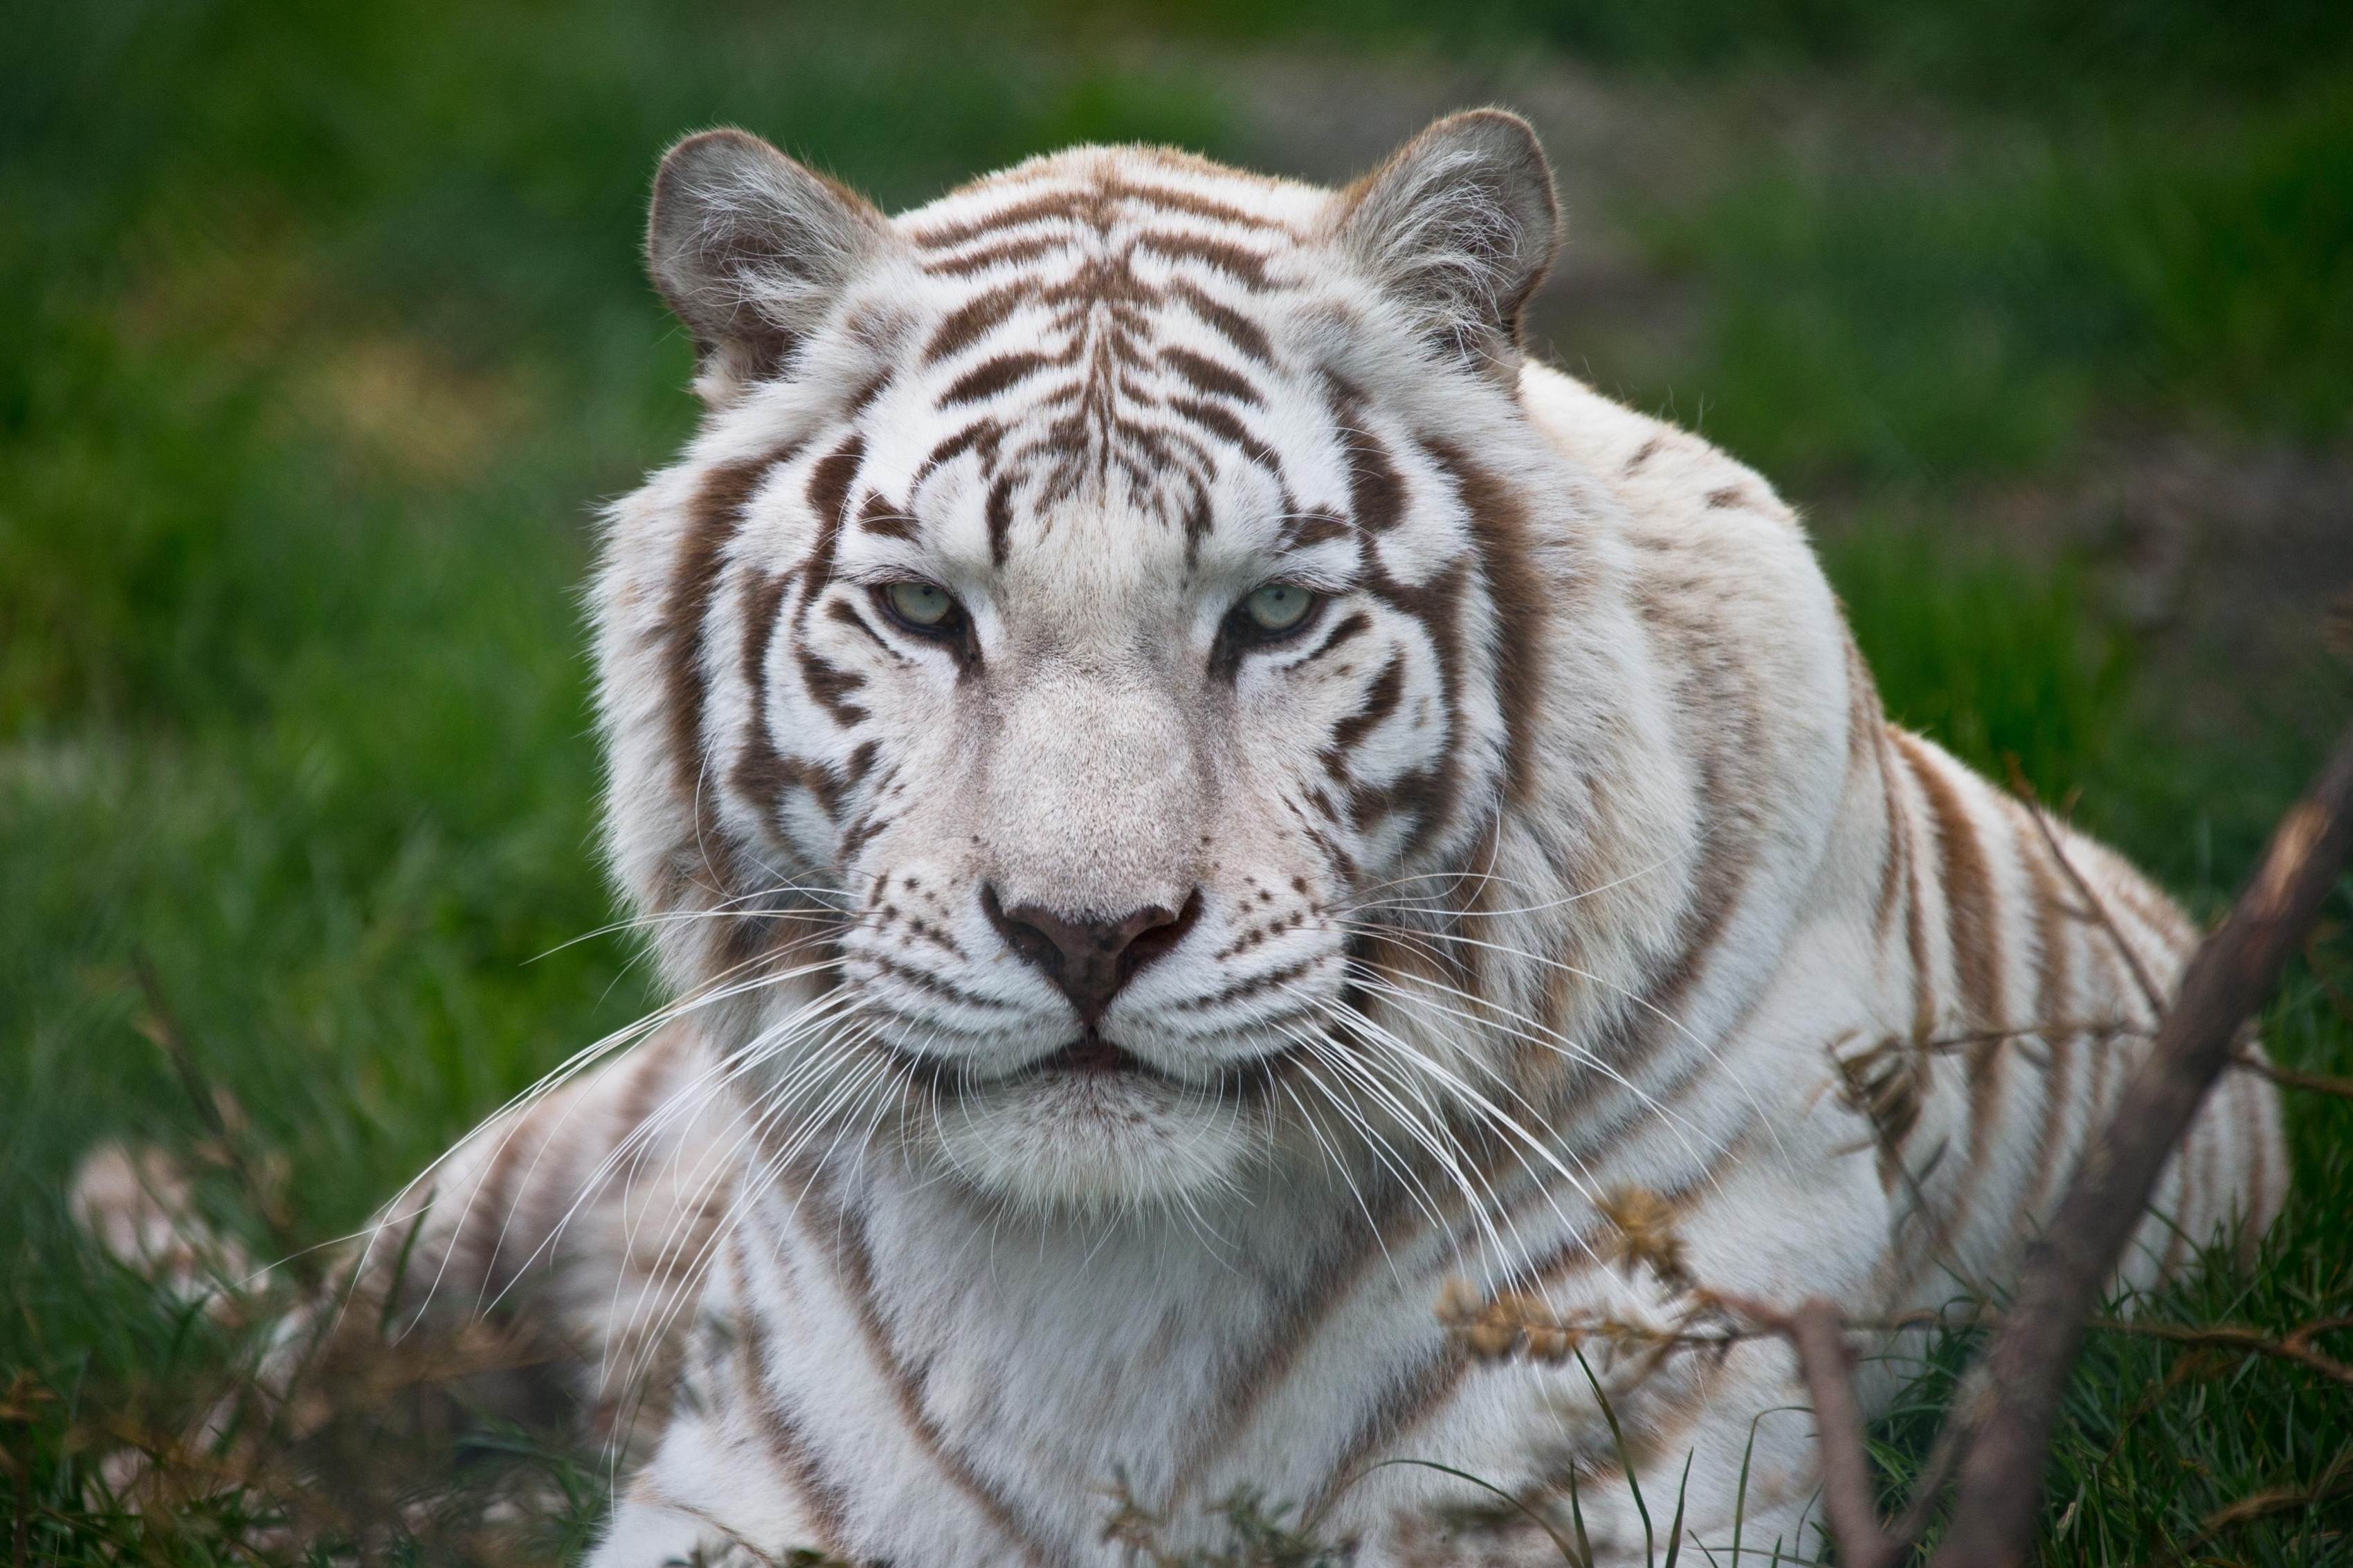 wallpaper hd white tiger - photo #23